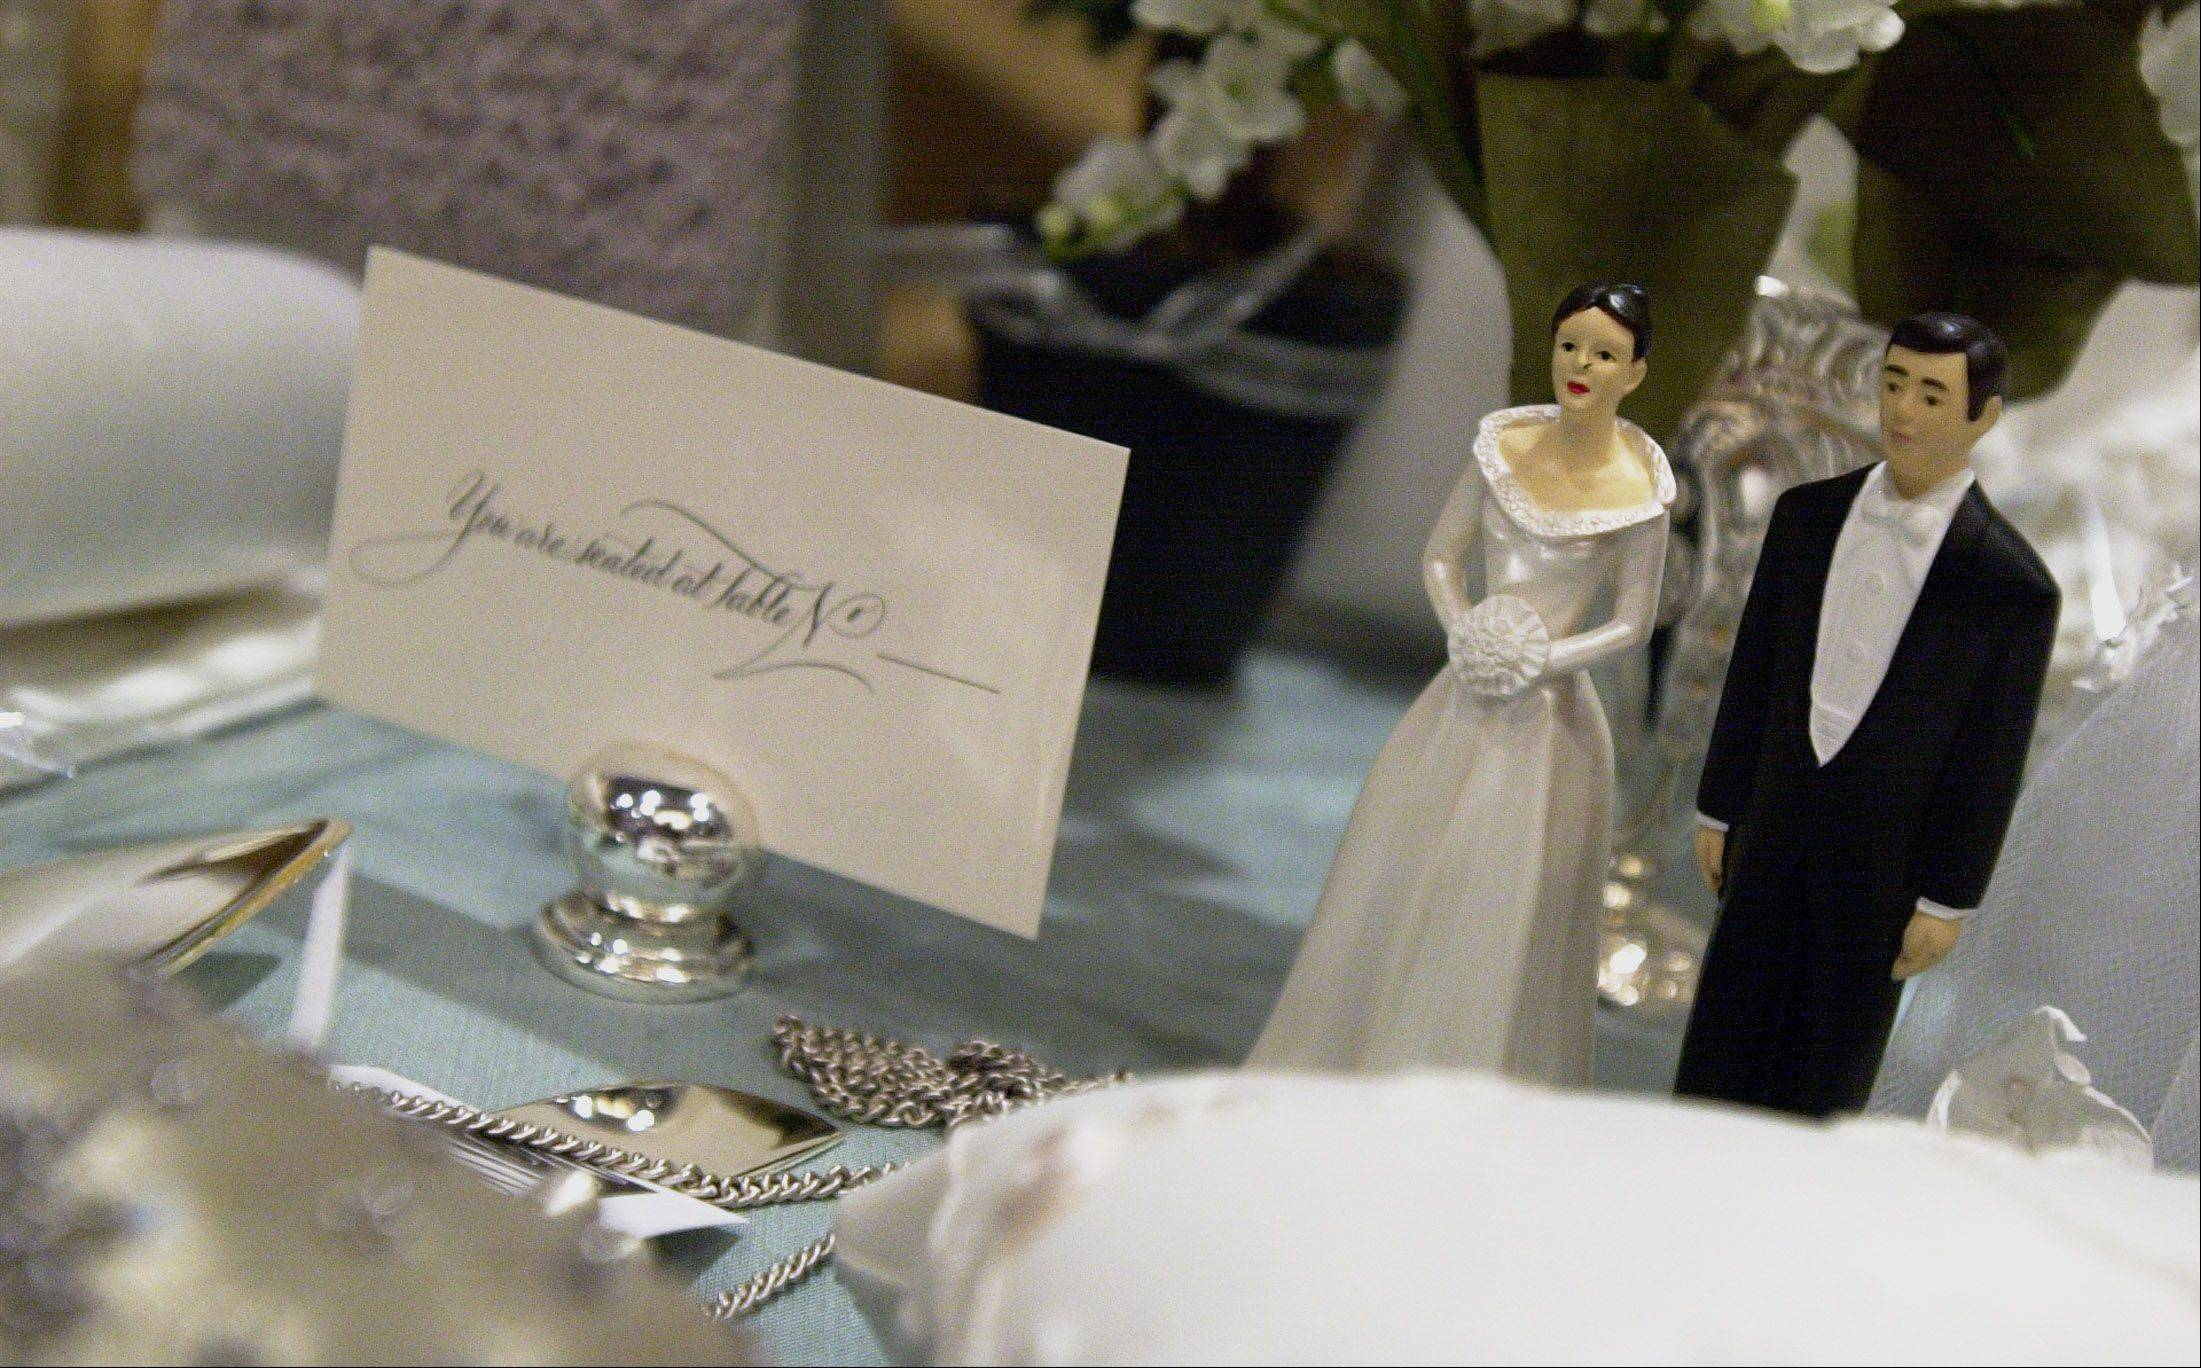 Geneva Bride and other local vendors are offering a free luxury wedding giveaway, including a reception for 125 people. The deadline to enter is July 4.